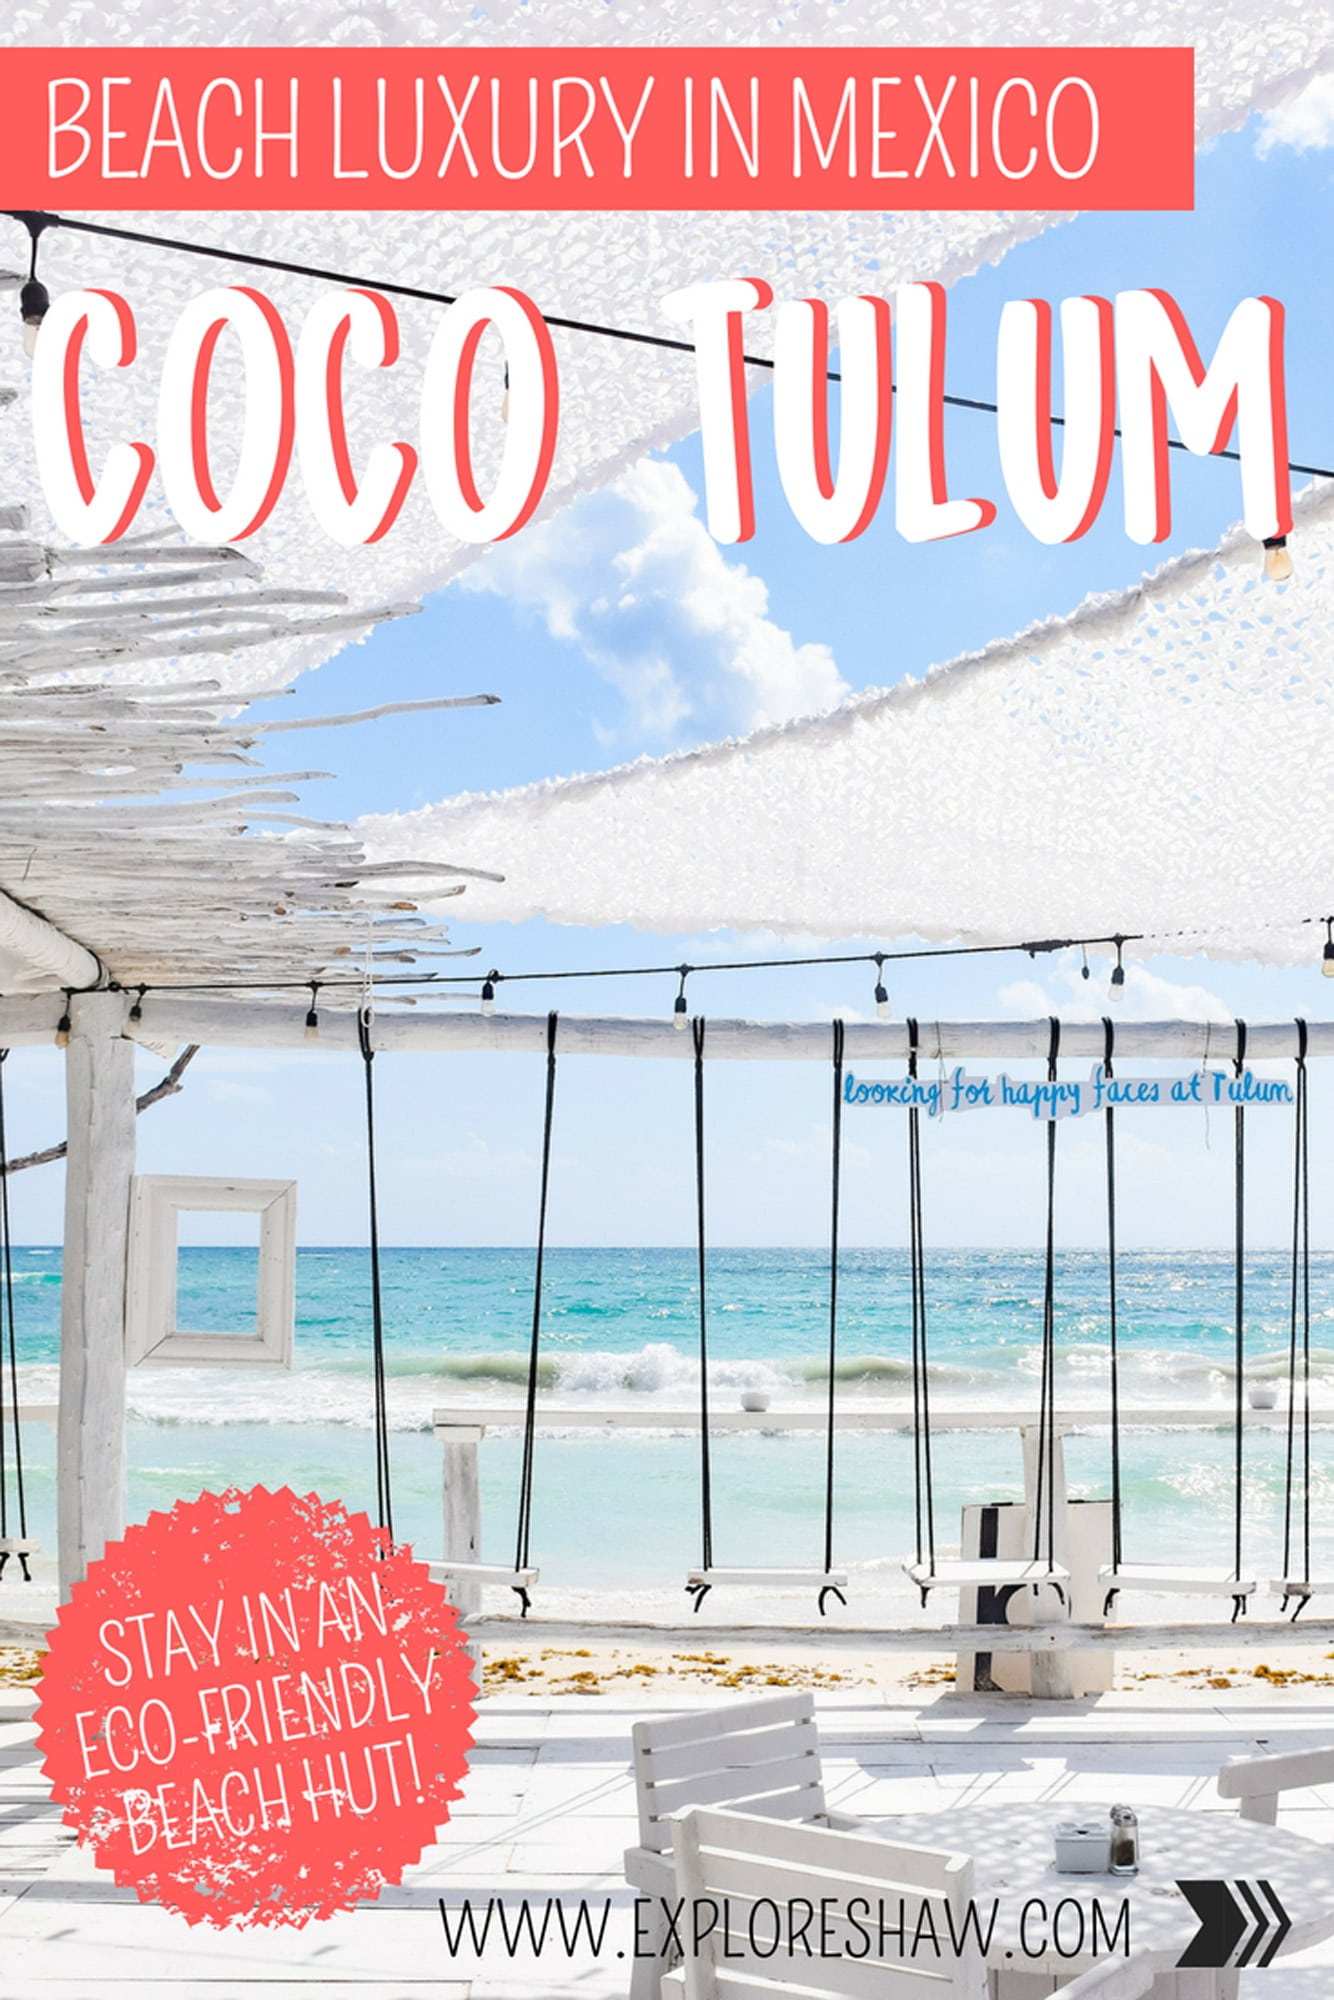 BEACH LUXURY IN MEXICO TULUM